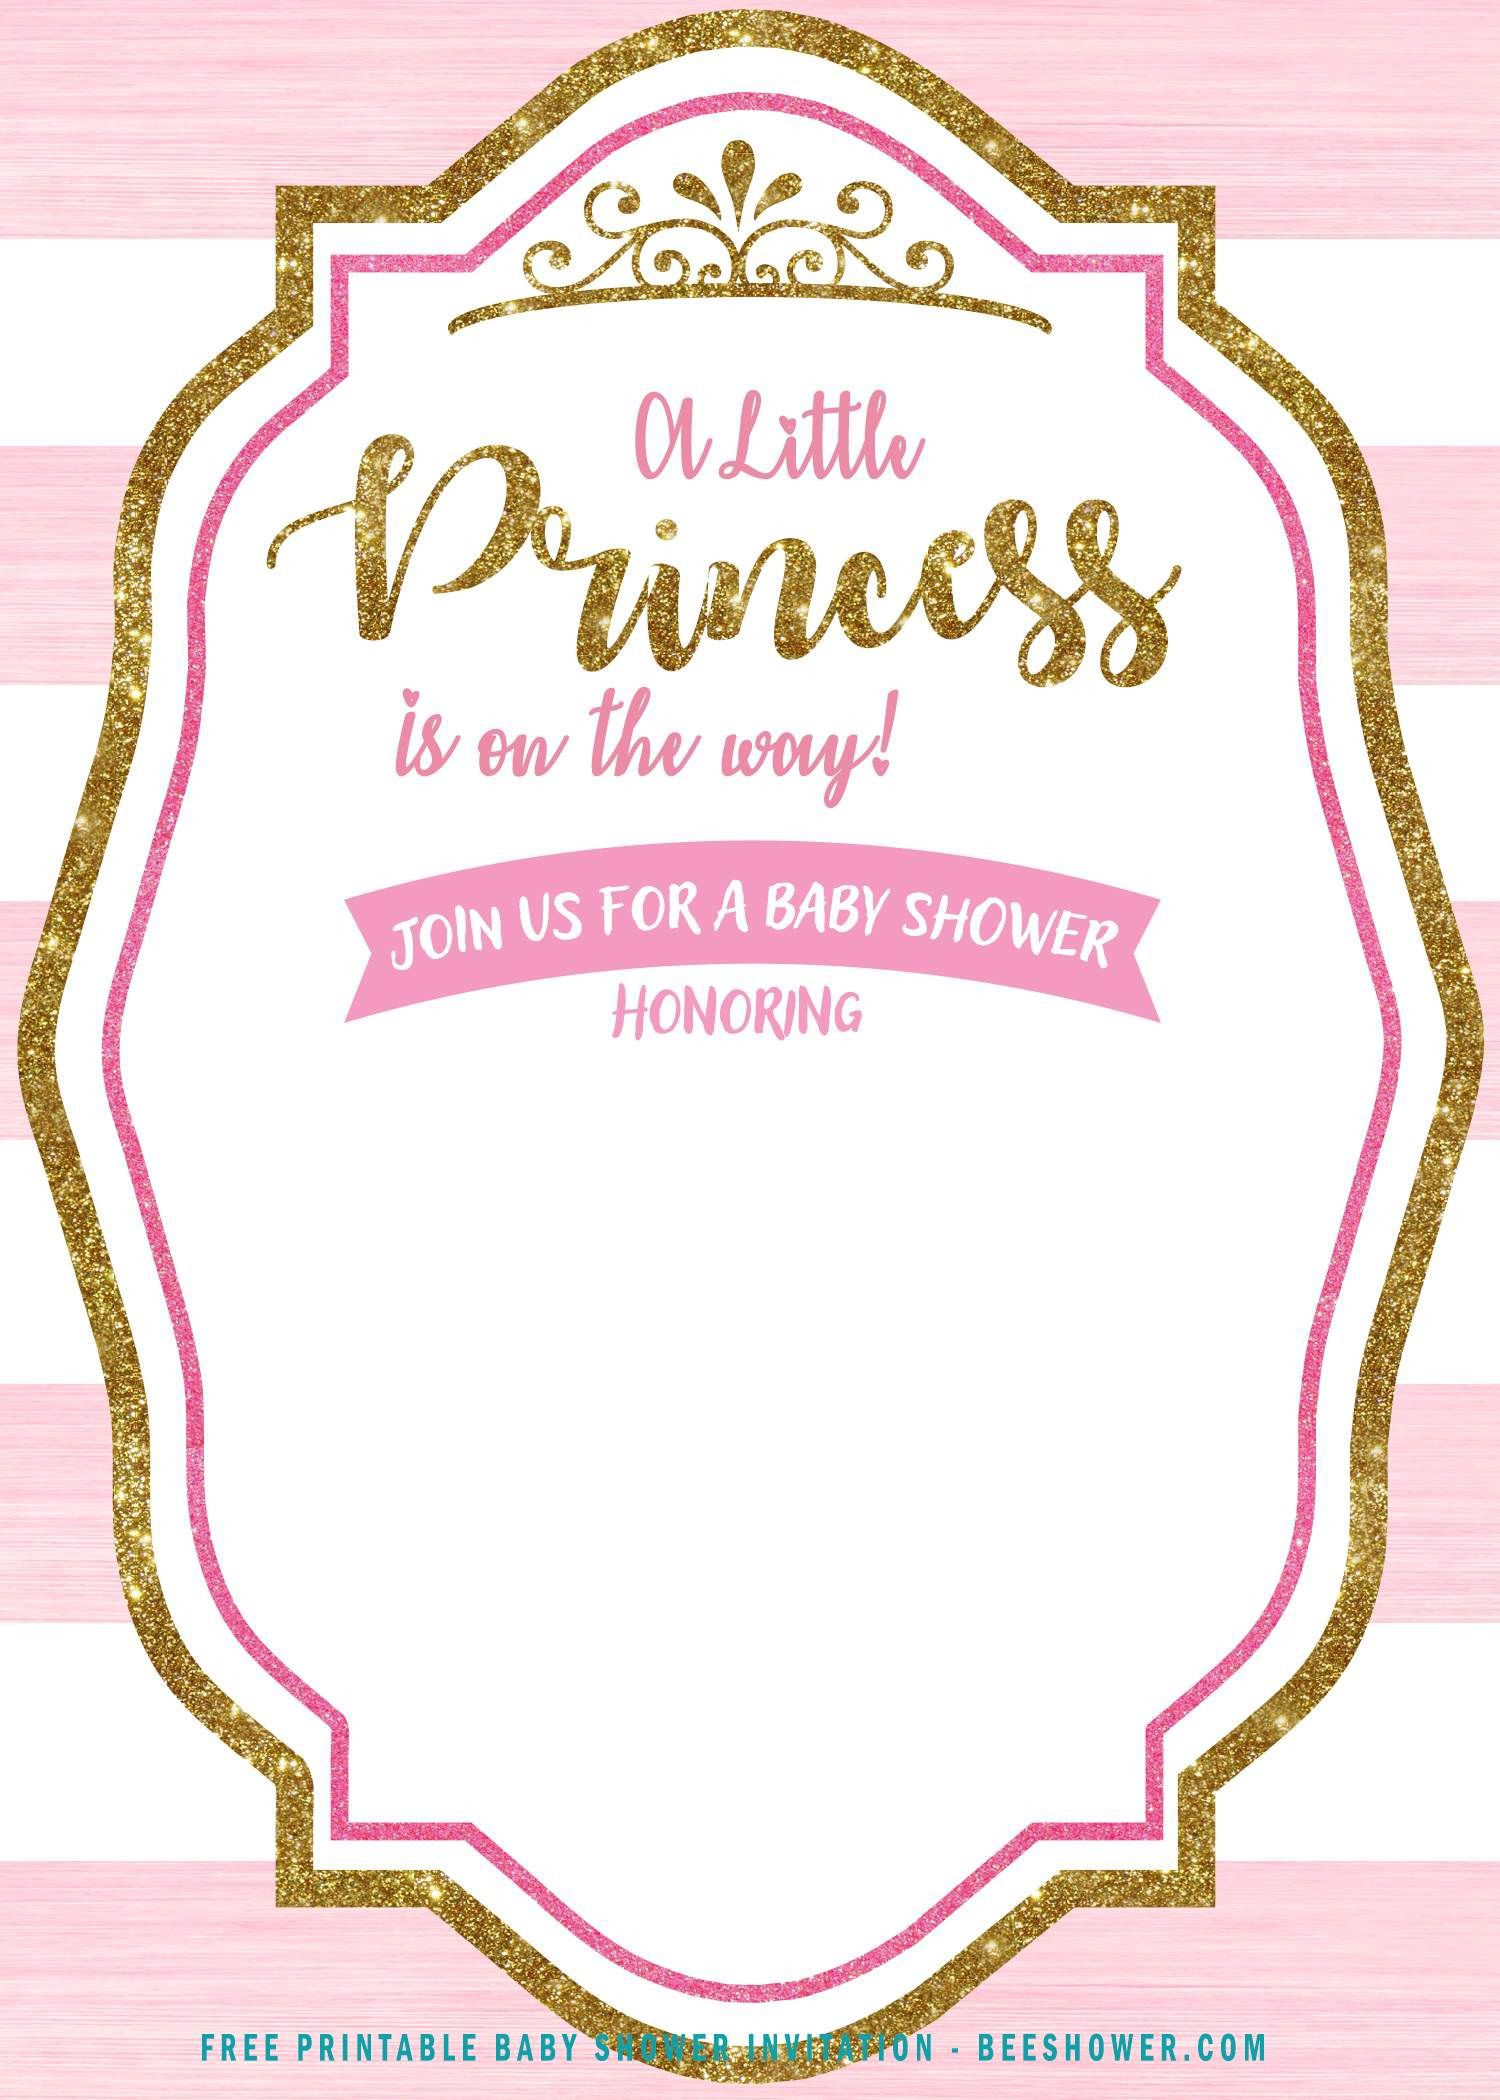 007 Stupendou Free Princes Baby Shower Invitation Template For Word Picture Full